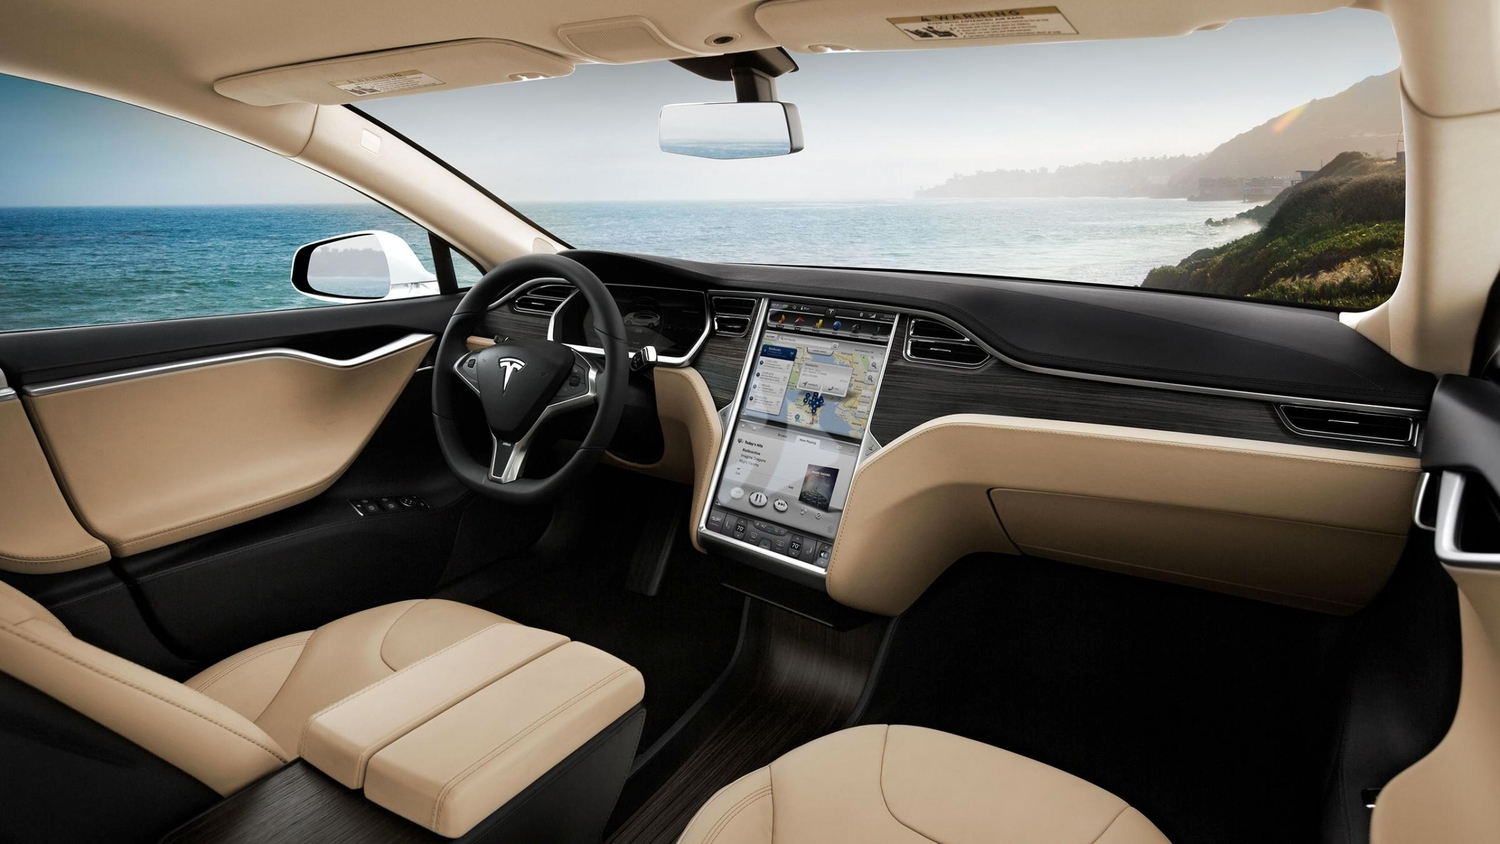 Get Behind The Wheel Of A Tesla On Autopilot